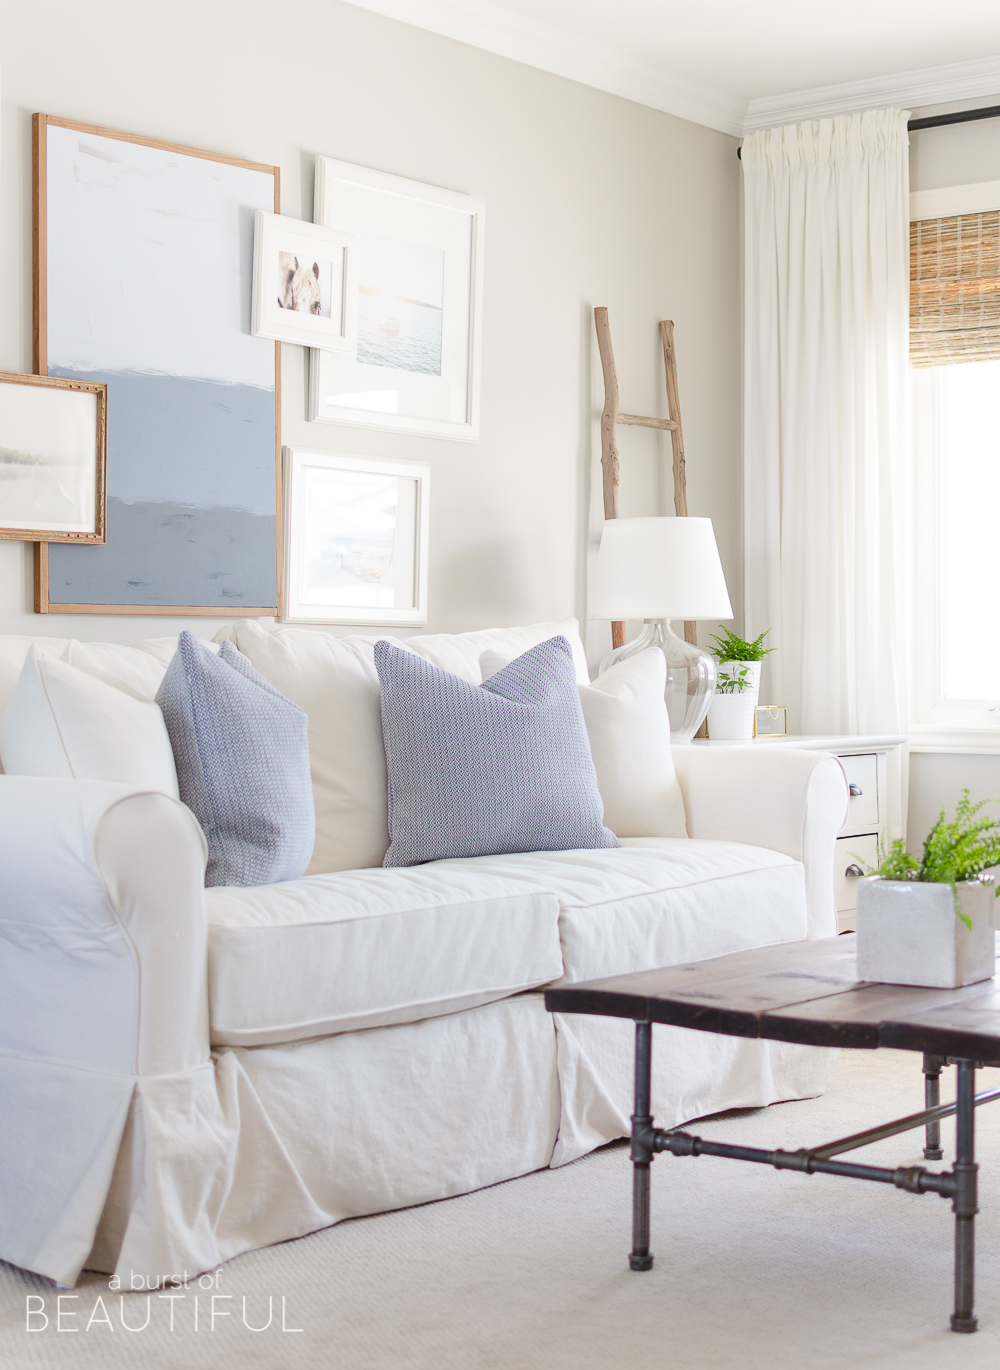 Spring Home Tour | Our Living Room - A modern farmhouse living room looks fresh and cheerful for spring with a subtle blue and white color palette and layered coastal gallery wall.